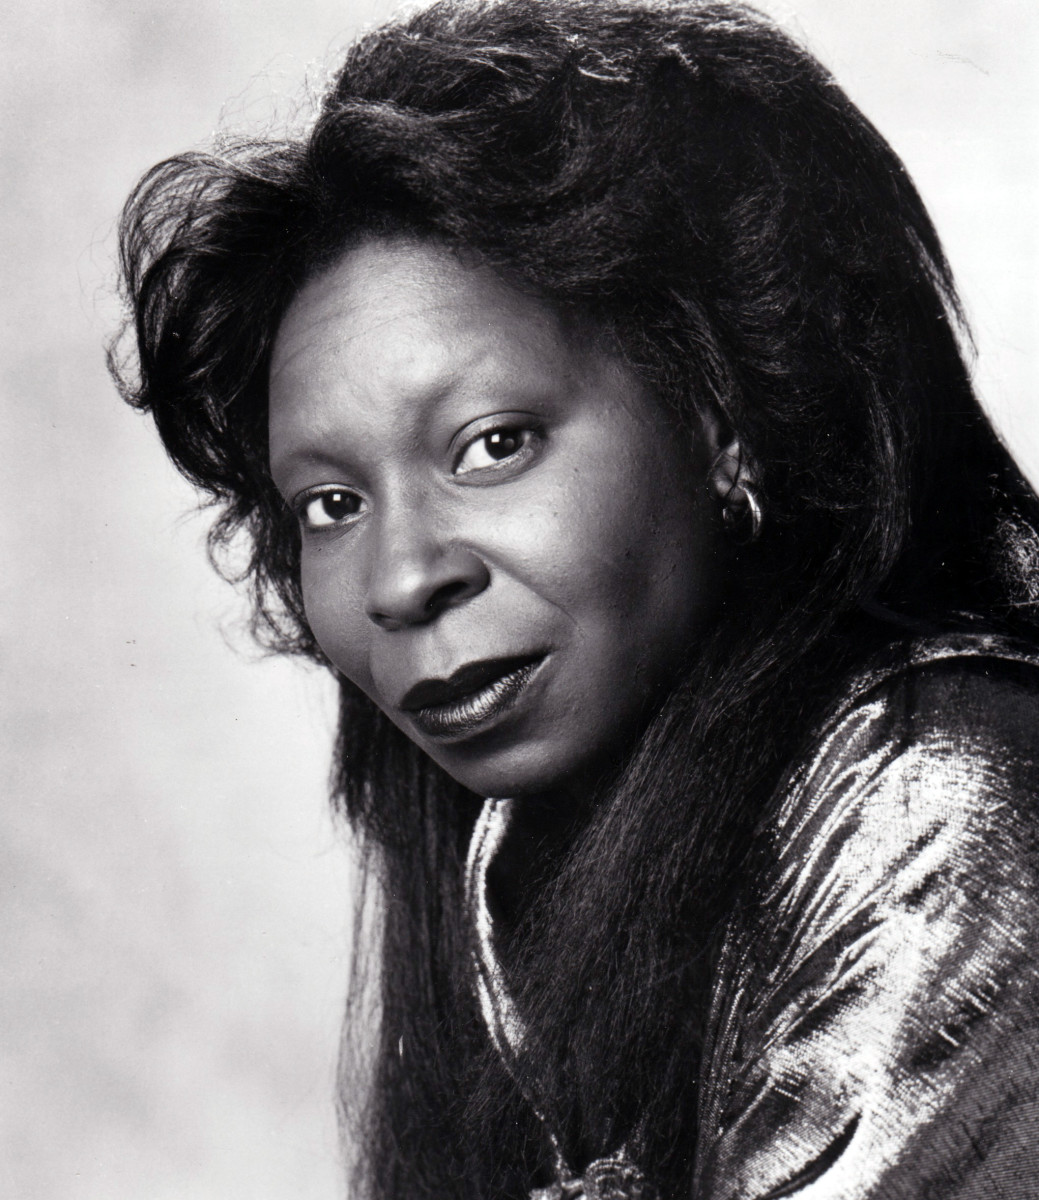 Whoopi Goldberg as Oda Mae Brown in the suspense thriller 'Ghost'